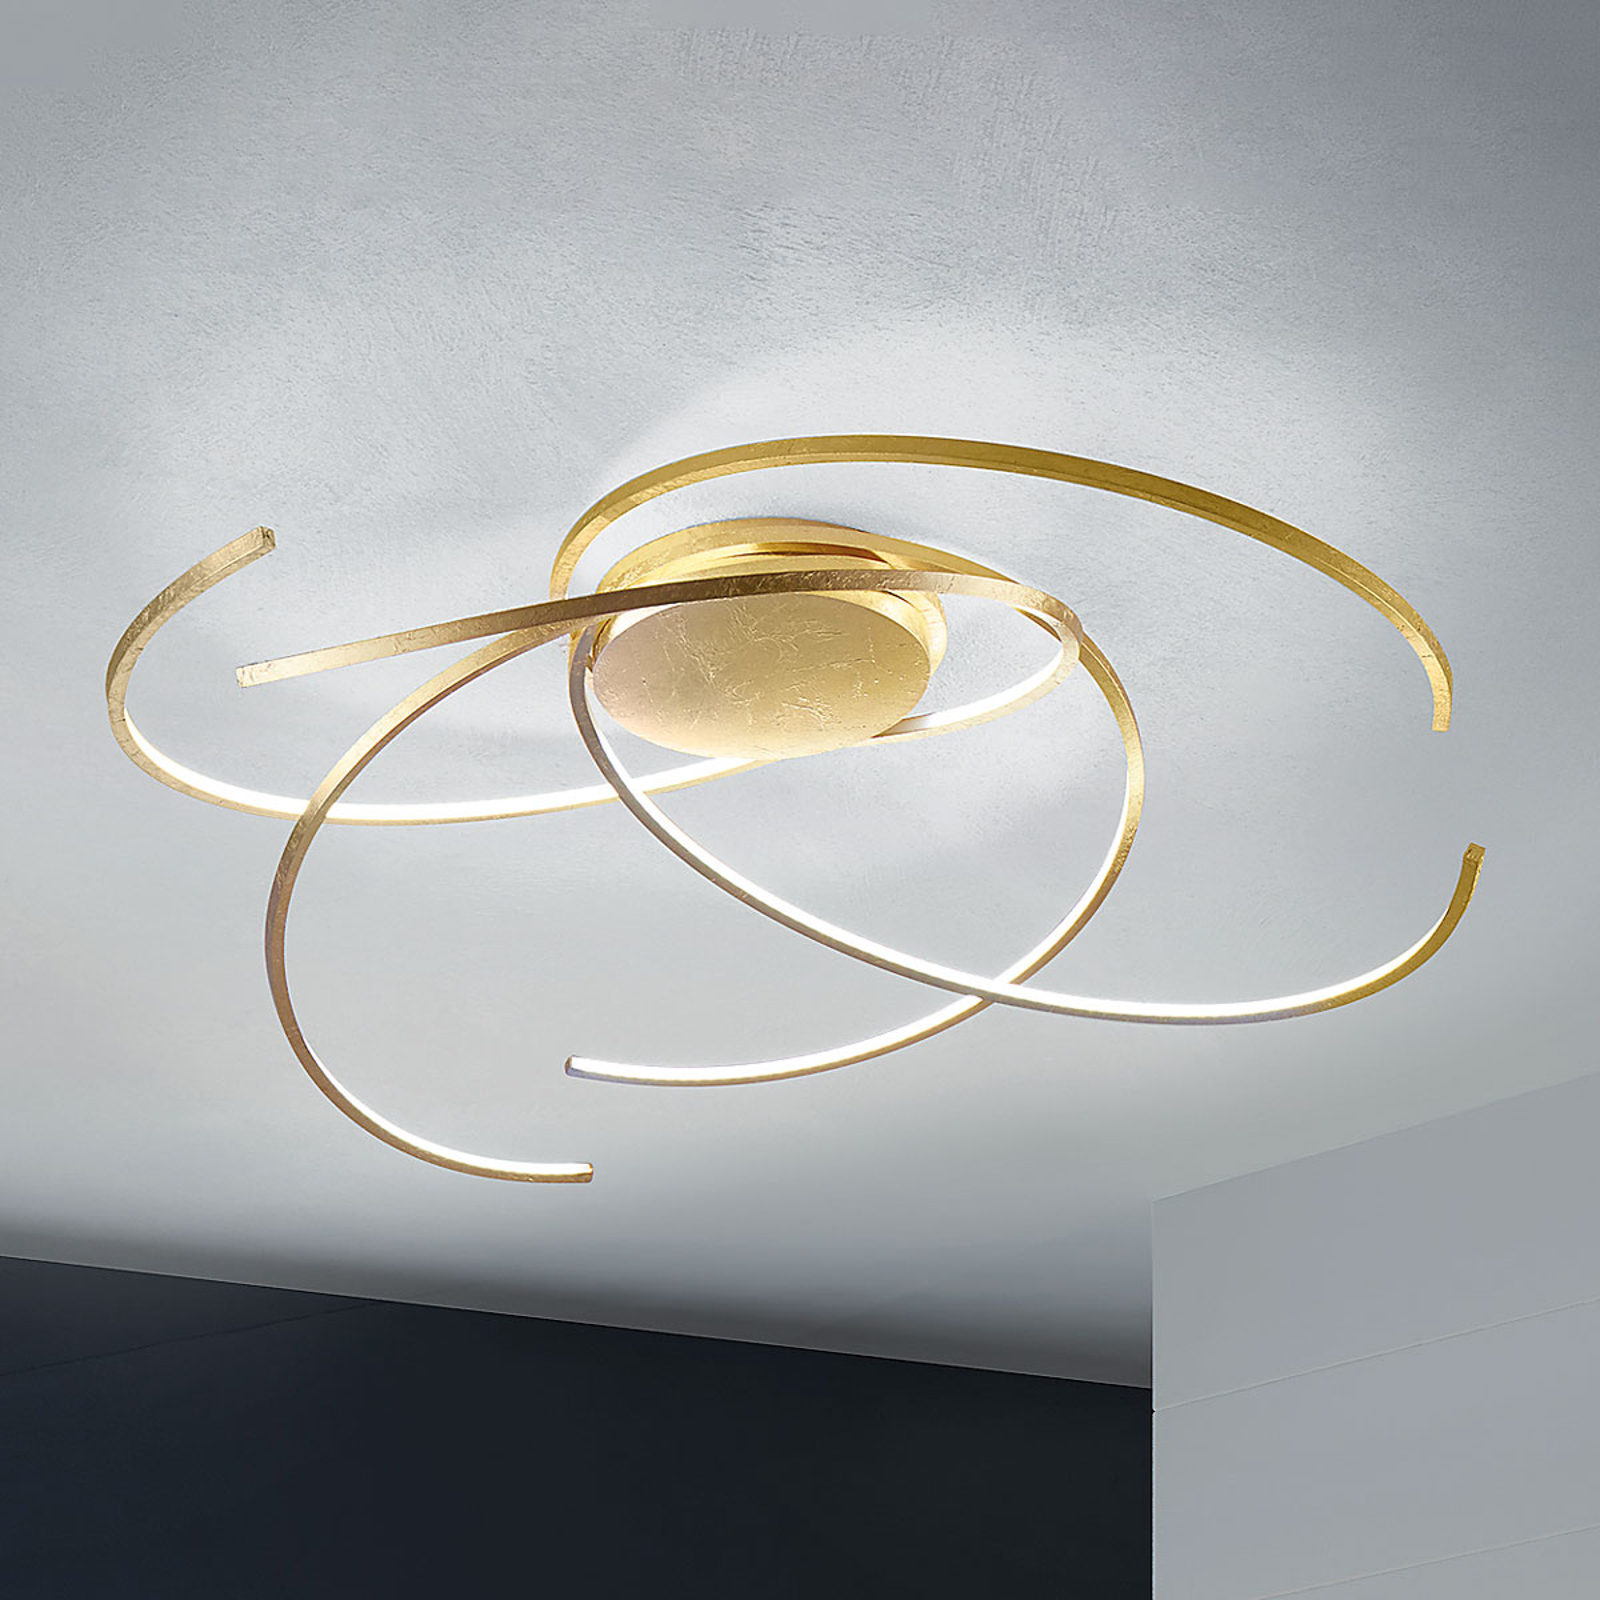 Plafonnier LED Space feuilles d'or 80 cm